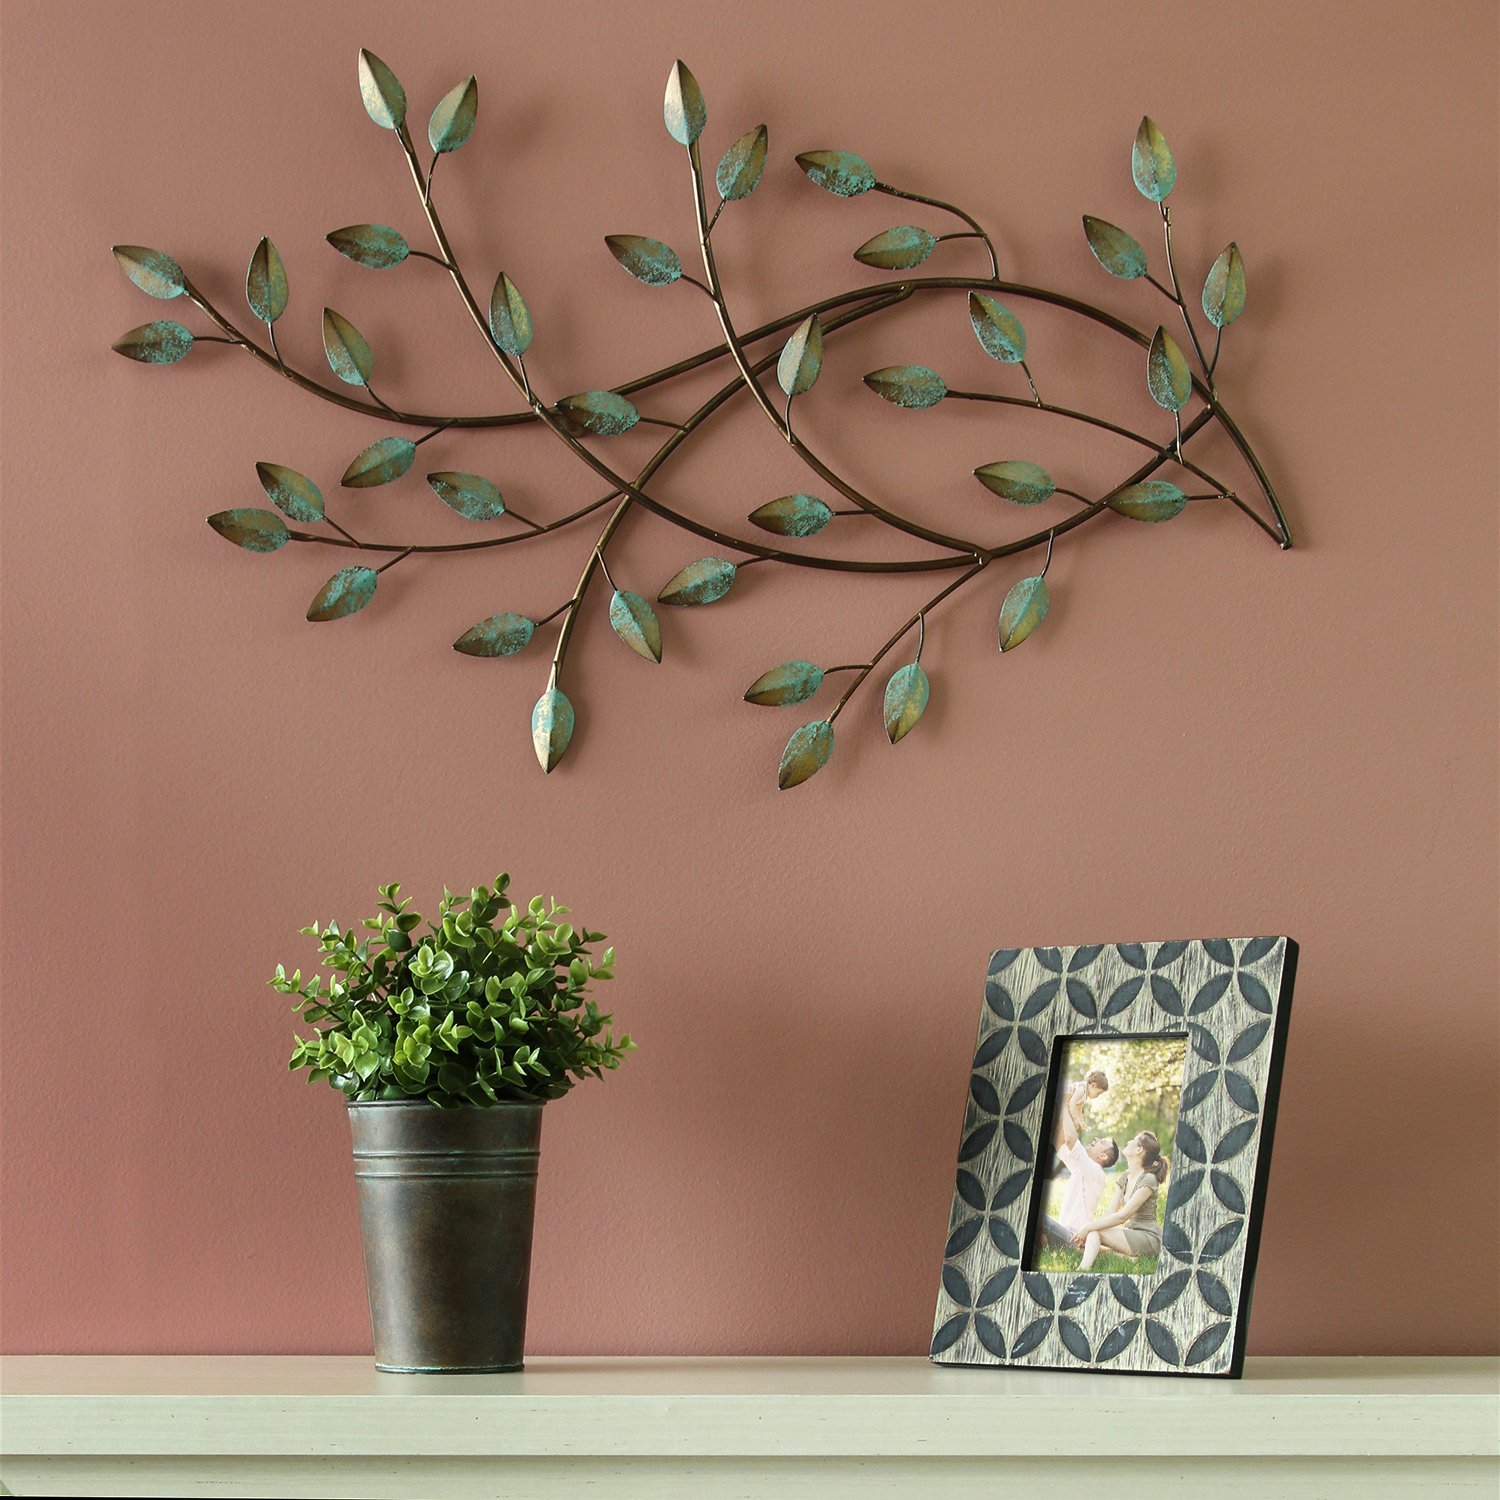 Patina Blowing Leaves Wall Décor Within Blowing Leaves Wall Decor (View 3 of 30)